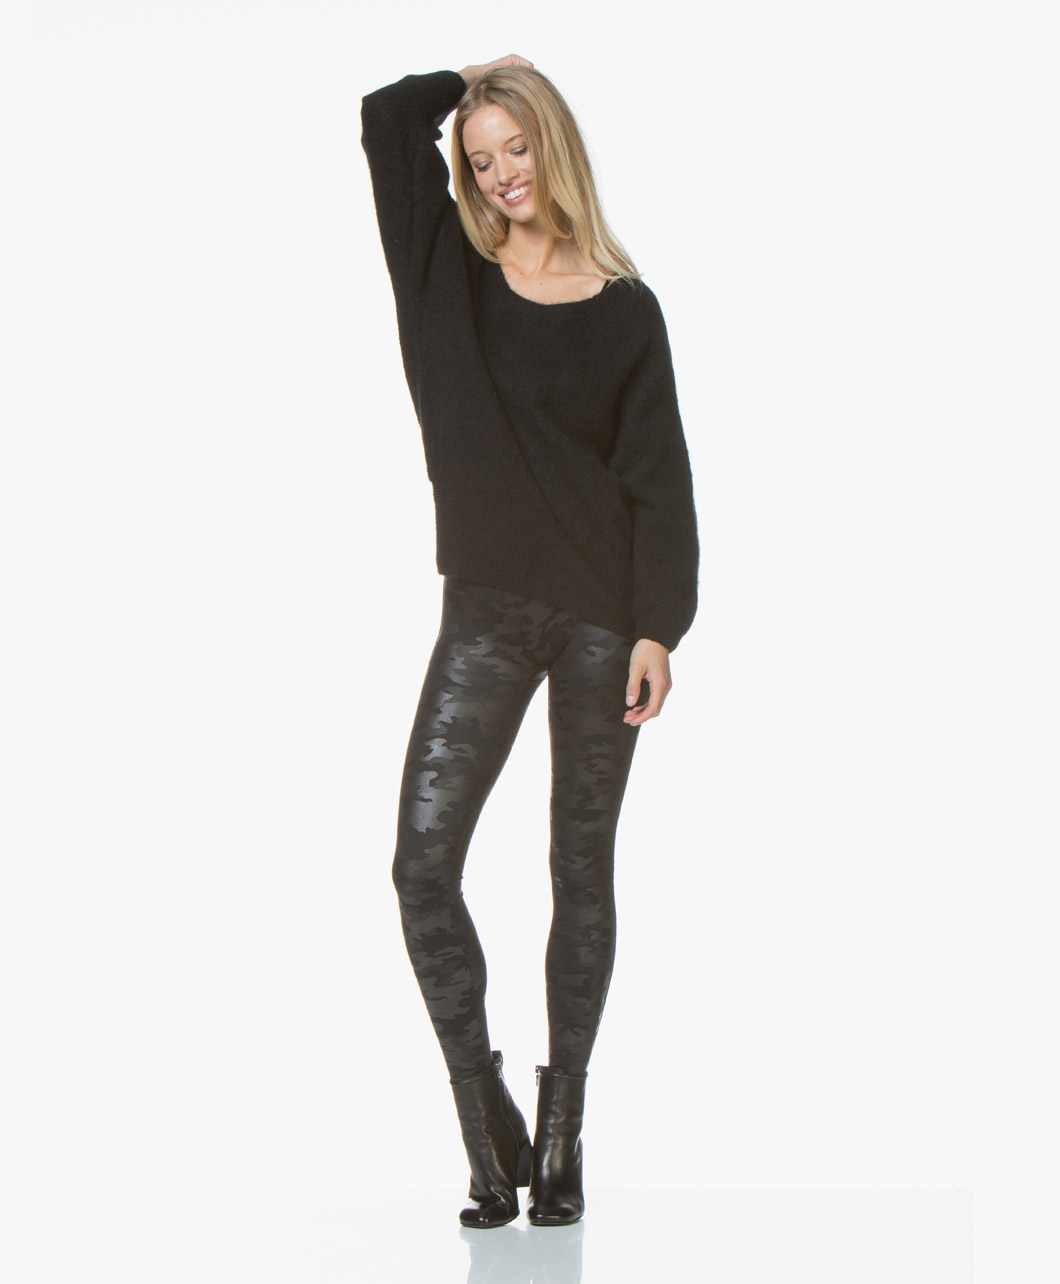 457f337ef5da1 SPANX® Faux Leather Camo Leggings - Matte Black - spx 20185r 9986 - matte  camo